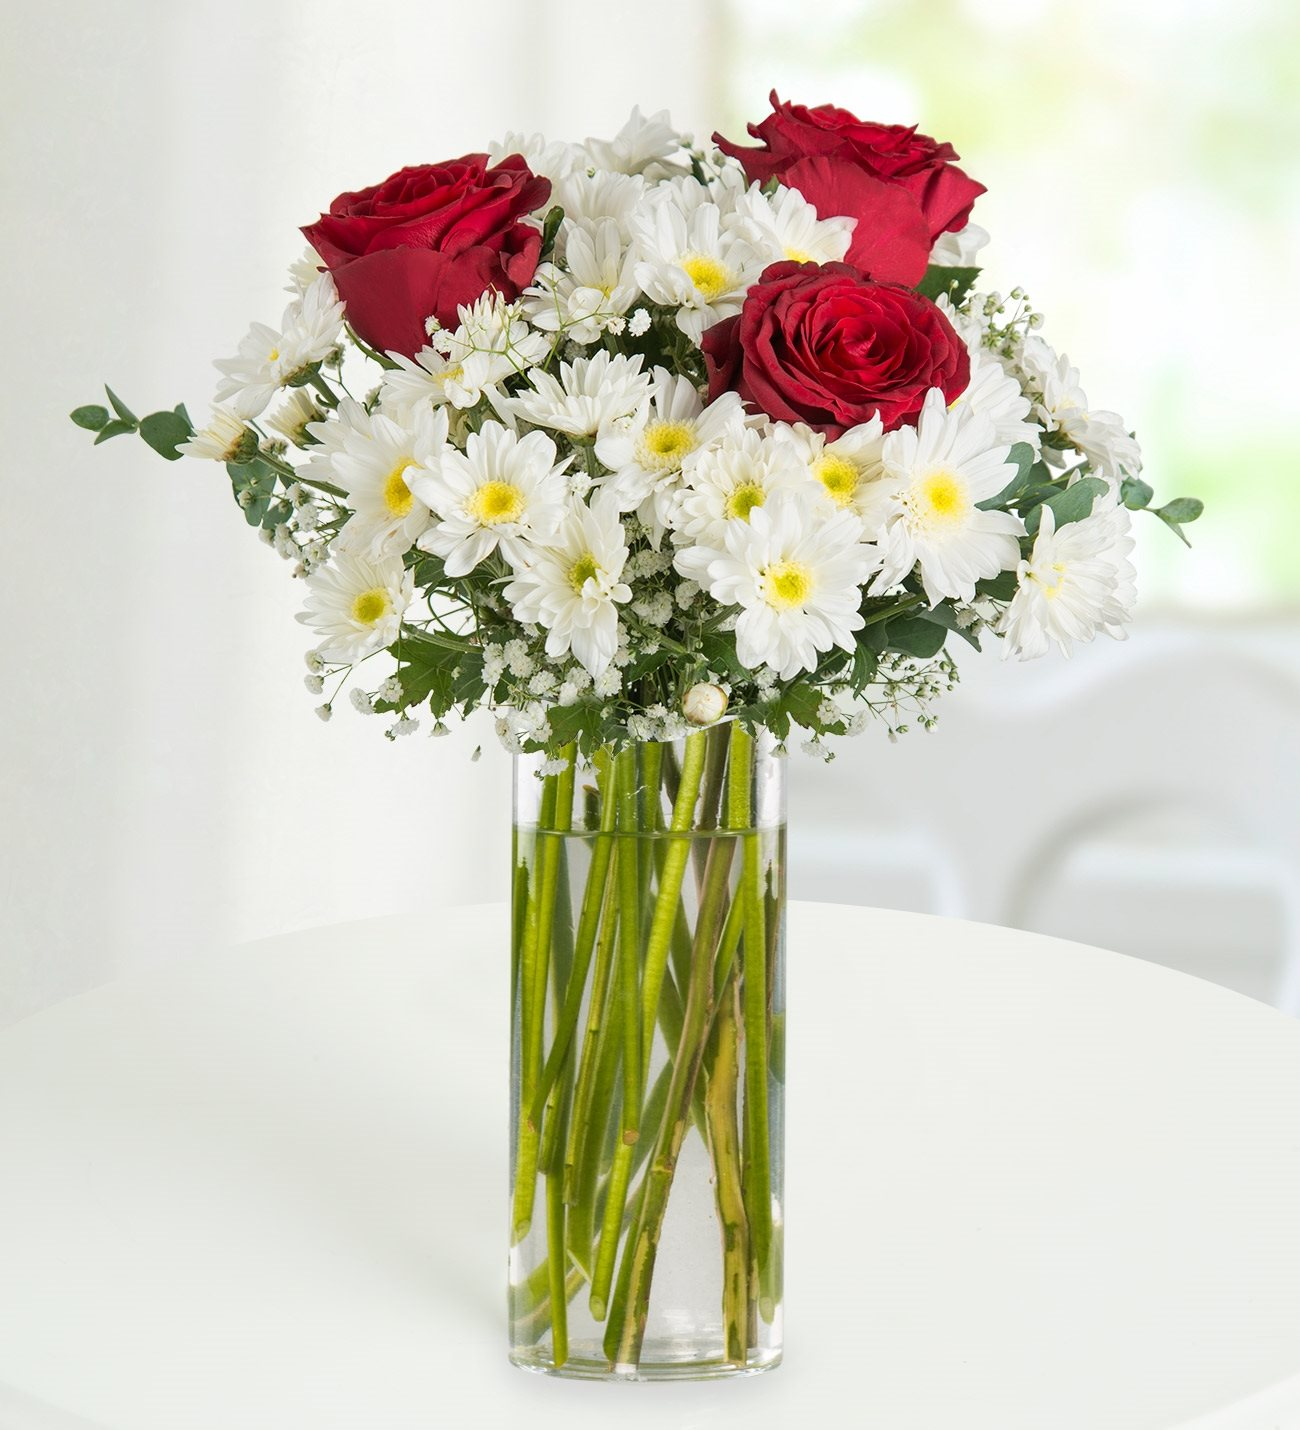 Symbol of love roses and daisies kc143589 3 red roses and daisies symbol of love izmirmasajfo